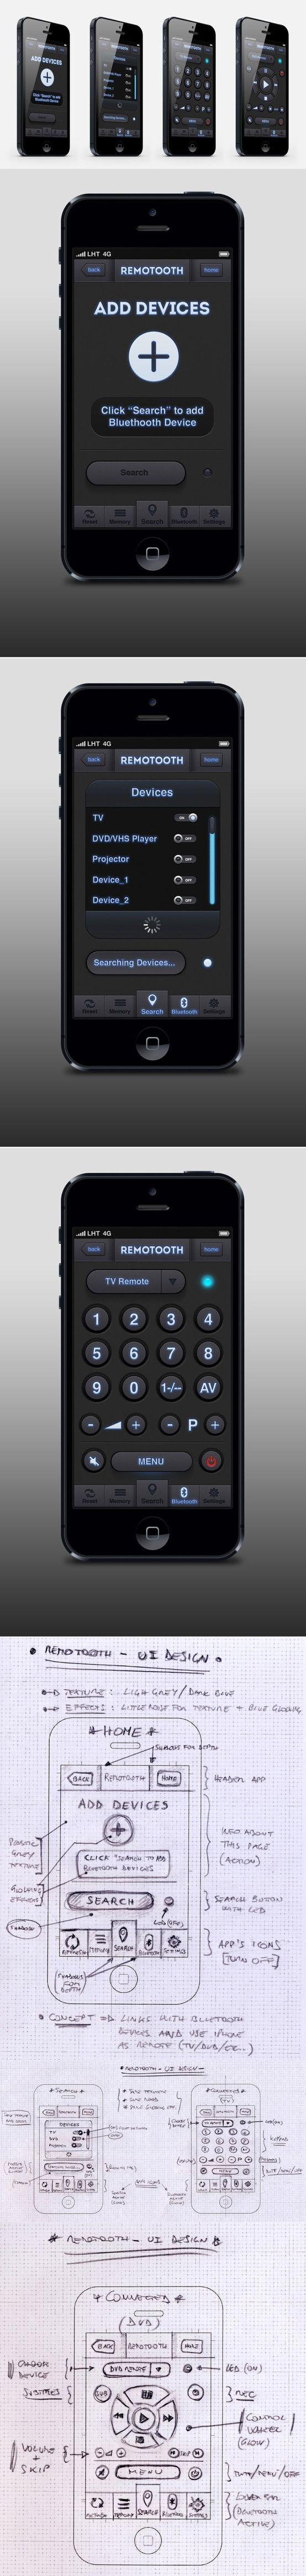 """REMOTOOTH"" - UI Design for iPhone by Tobia Crivellari, via Behance"